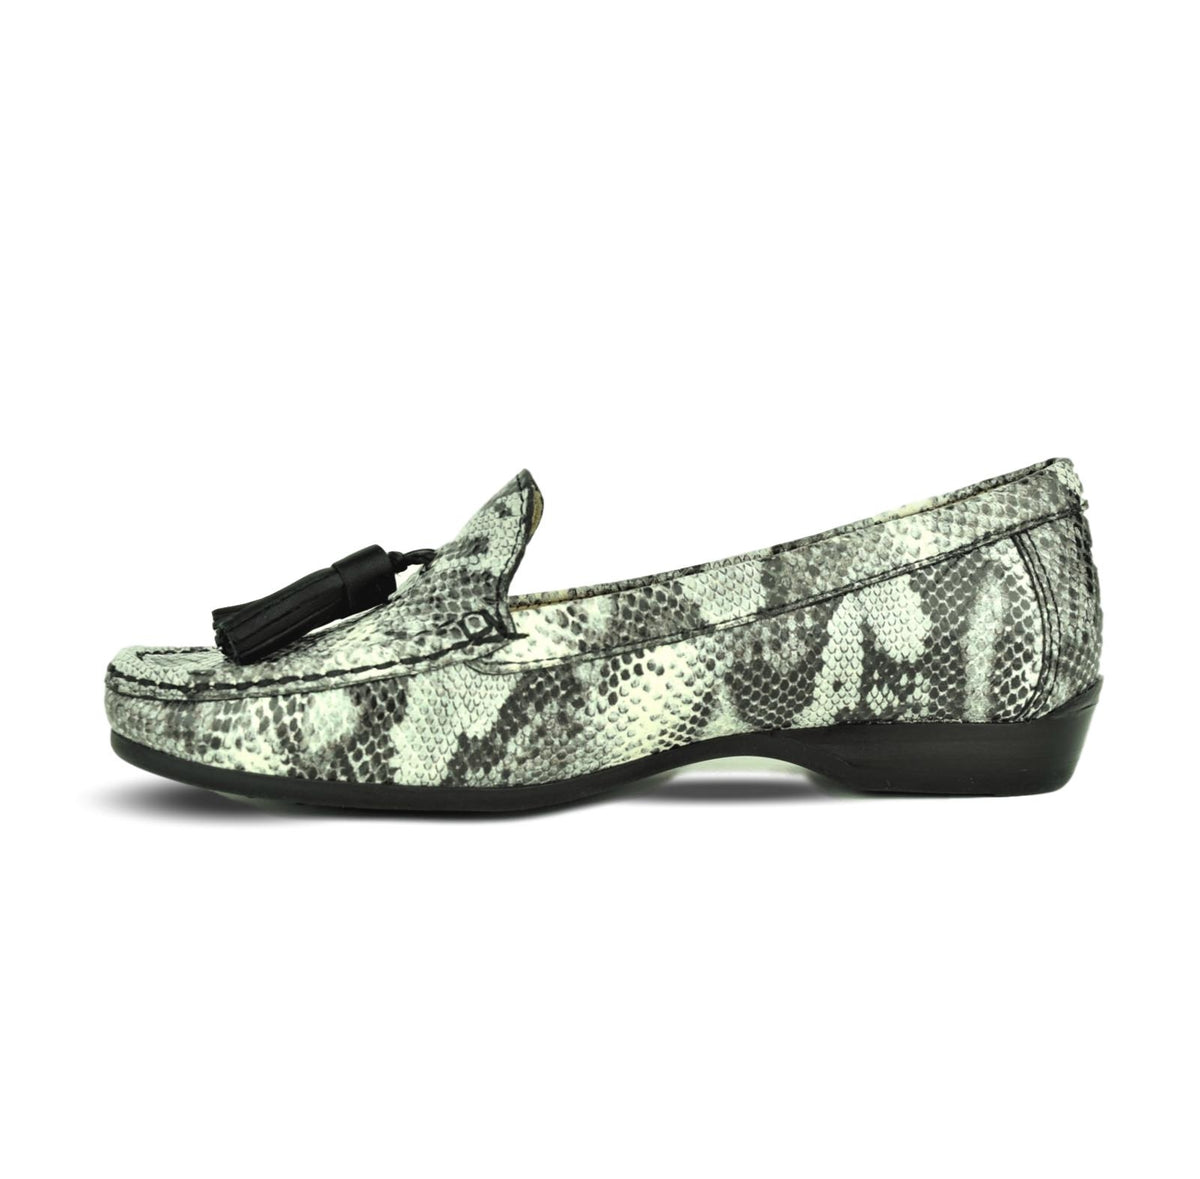 STEFANY - Wirth Moccasin Snake Print